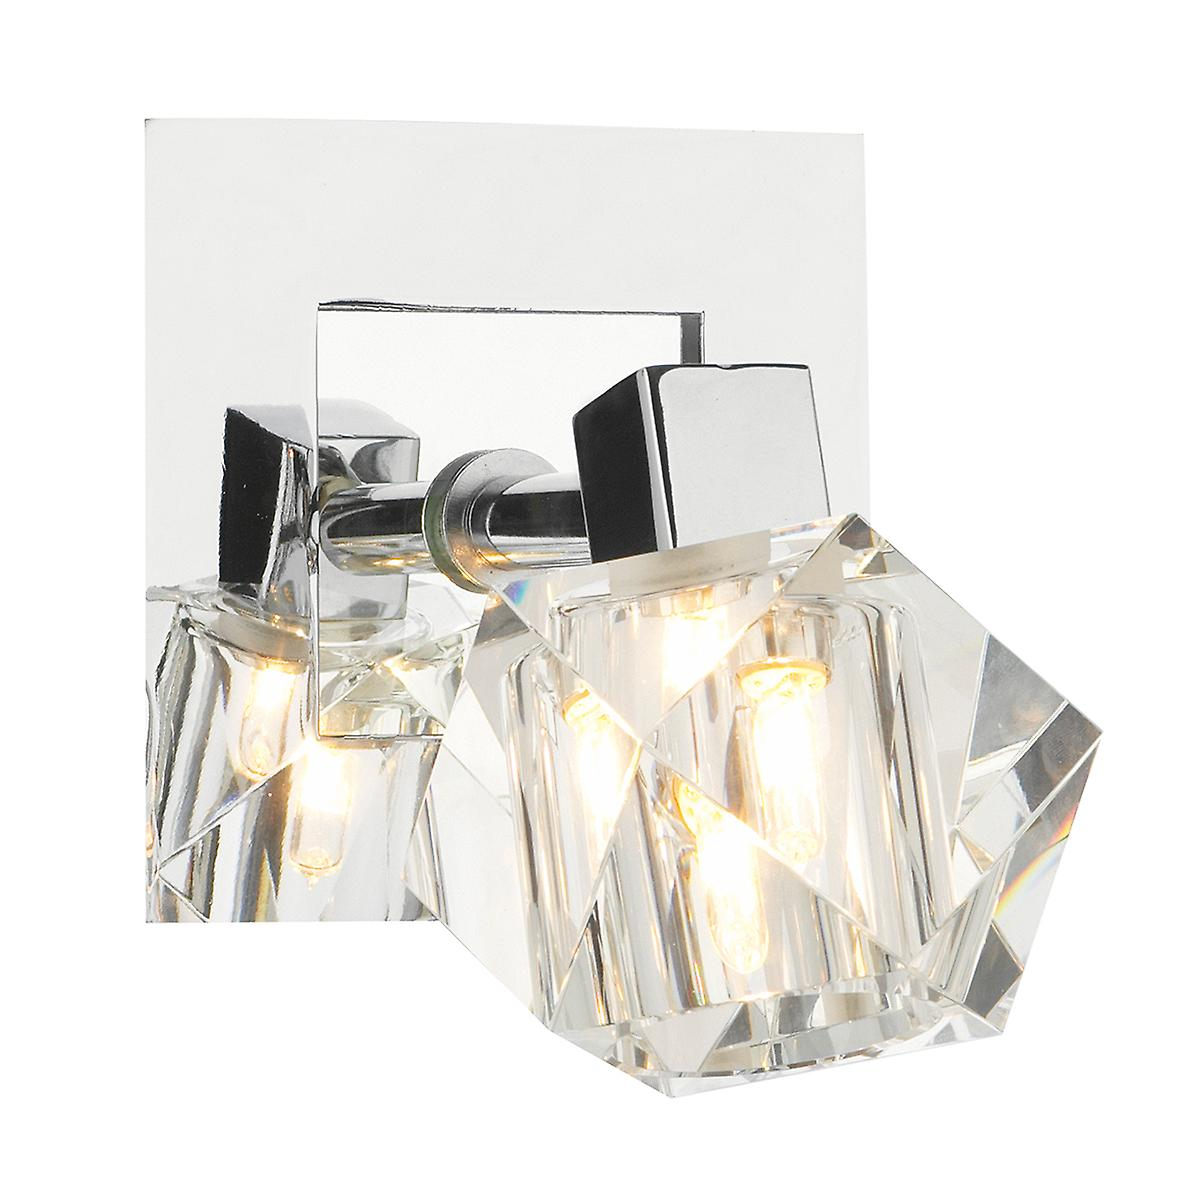 Dar GEO0750 Geo Contemporary Switched Halogen Wall Light